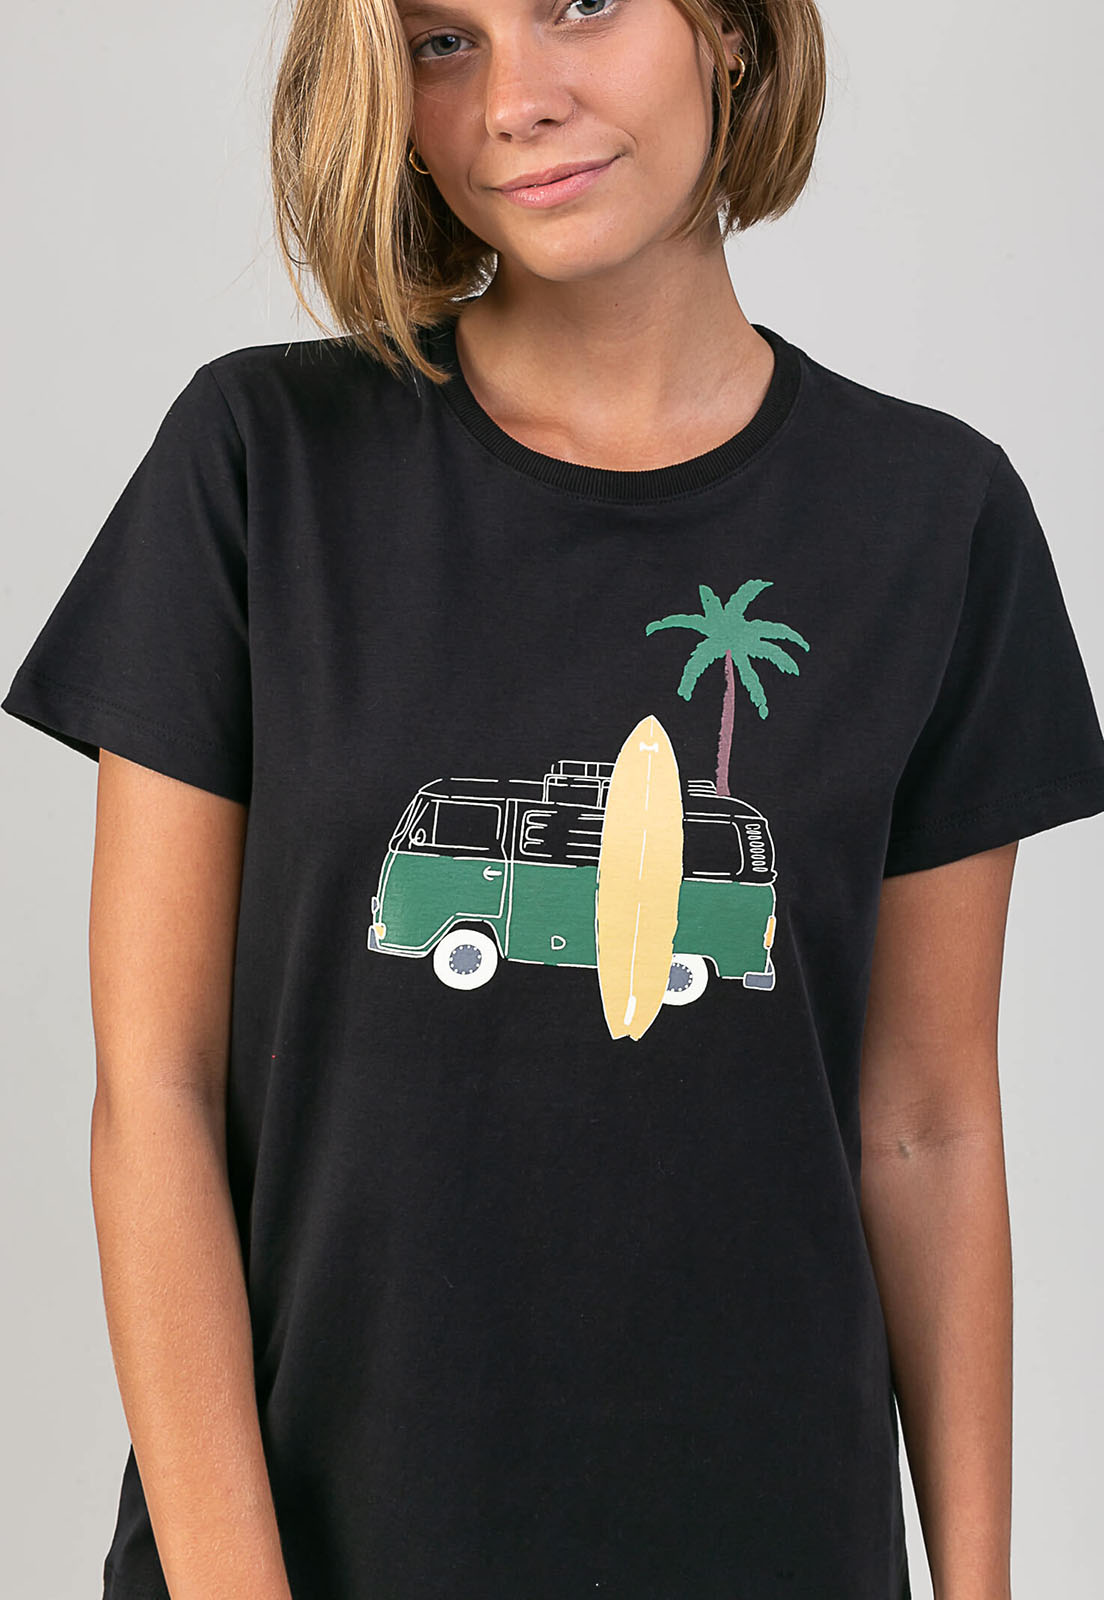 T-shirt Surf Trip melty